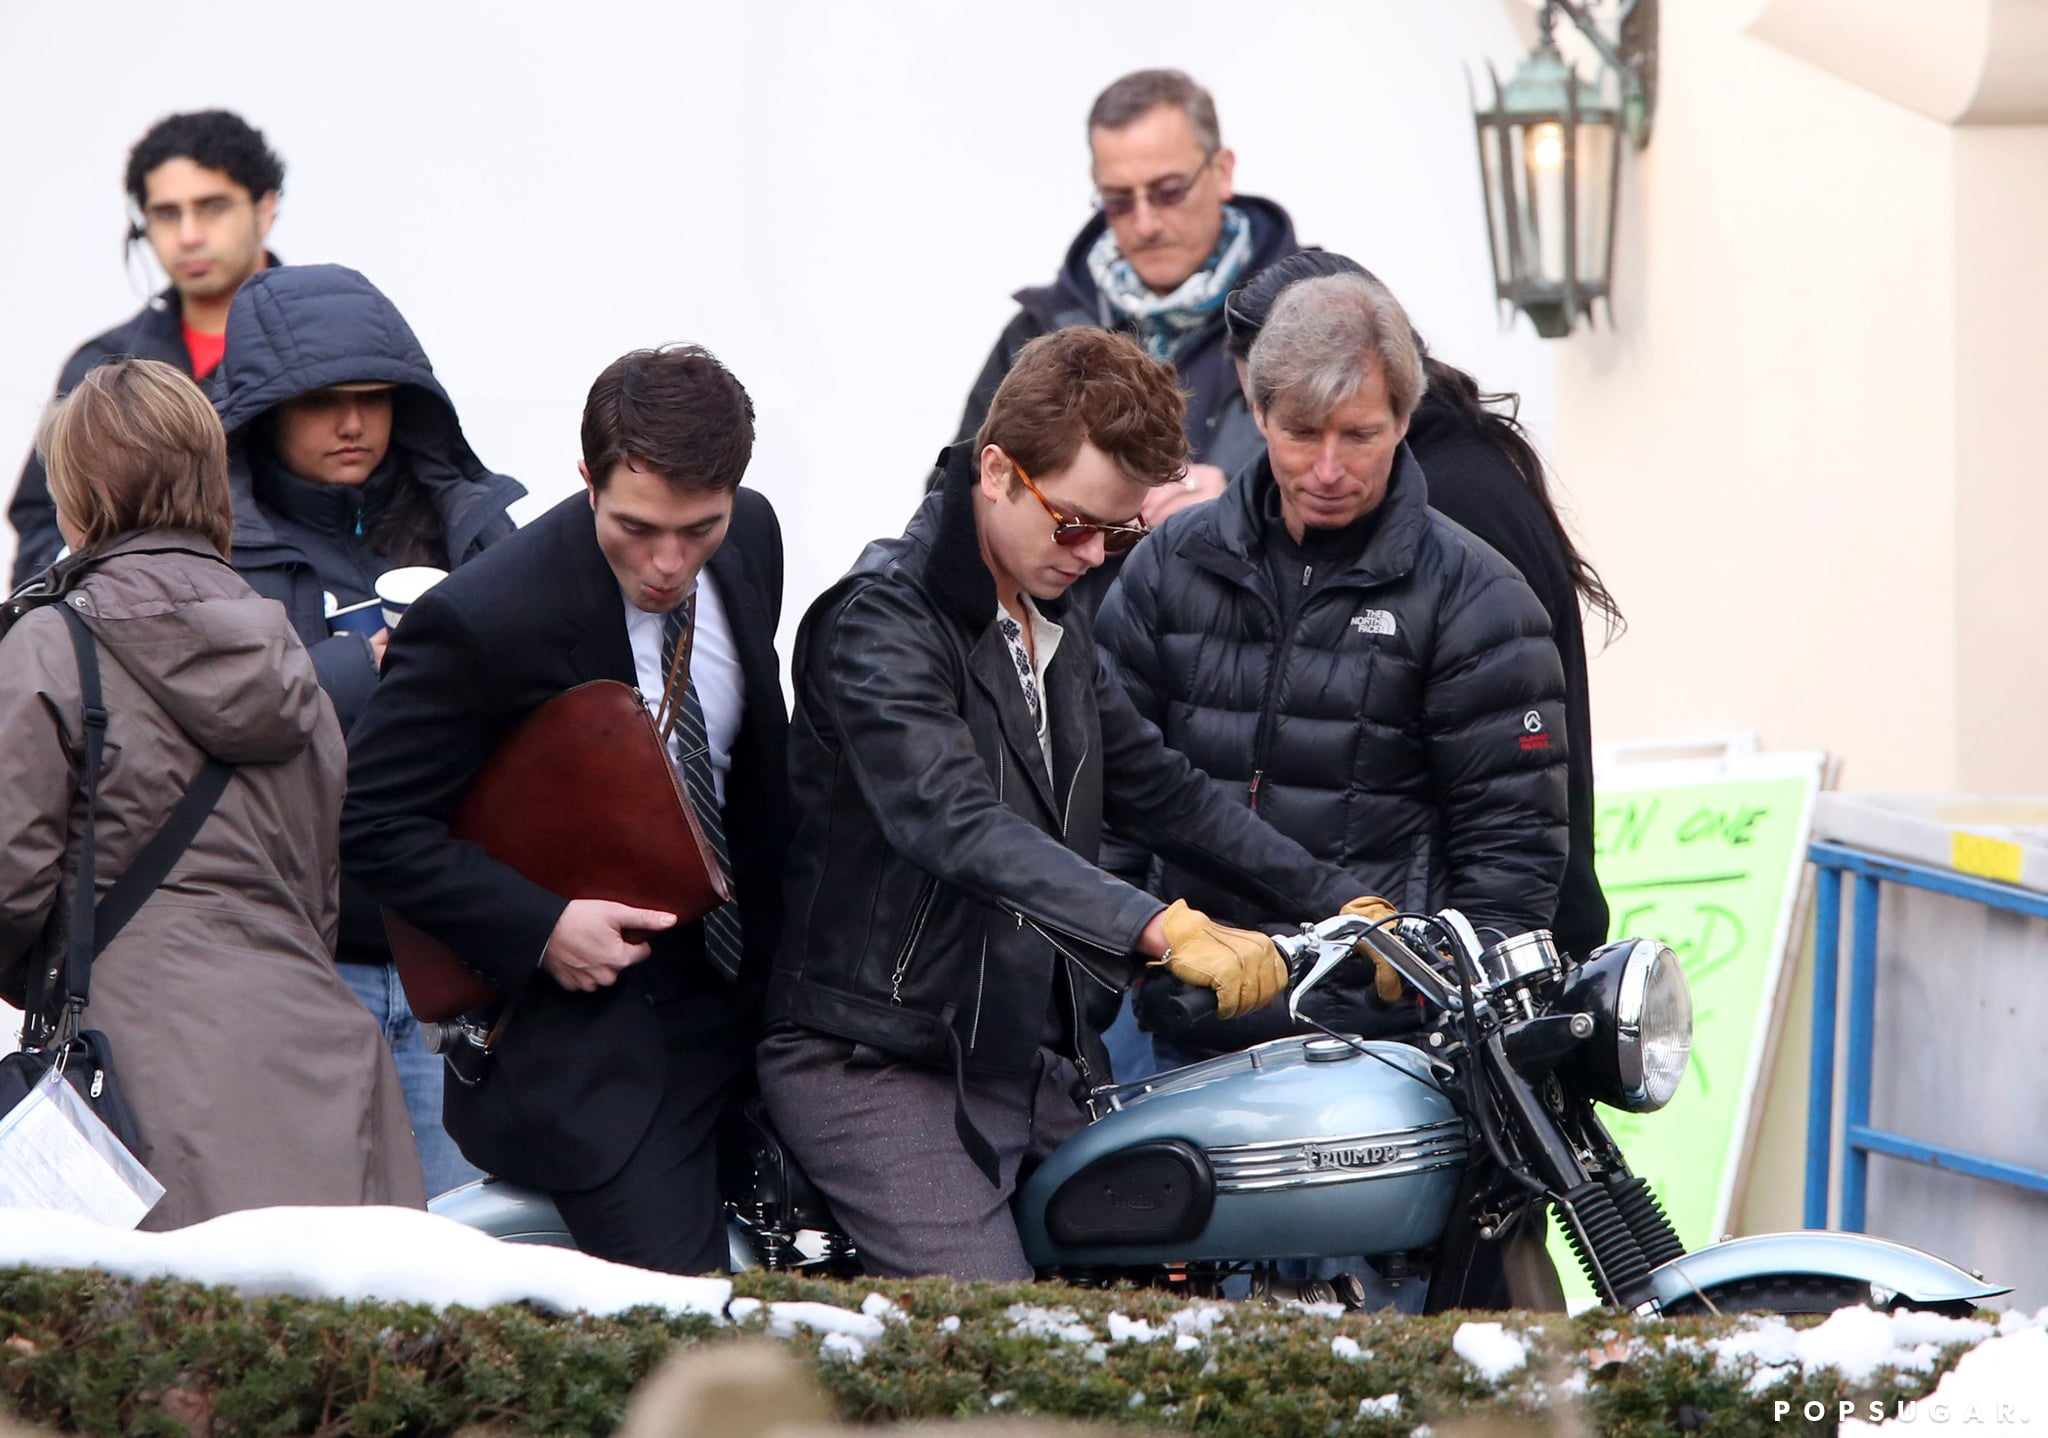 Stage One: How Many People Does It Take to Get Two Guys on a Motorcycle?